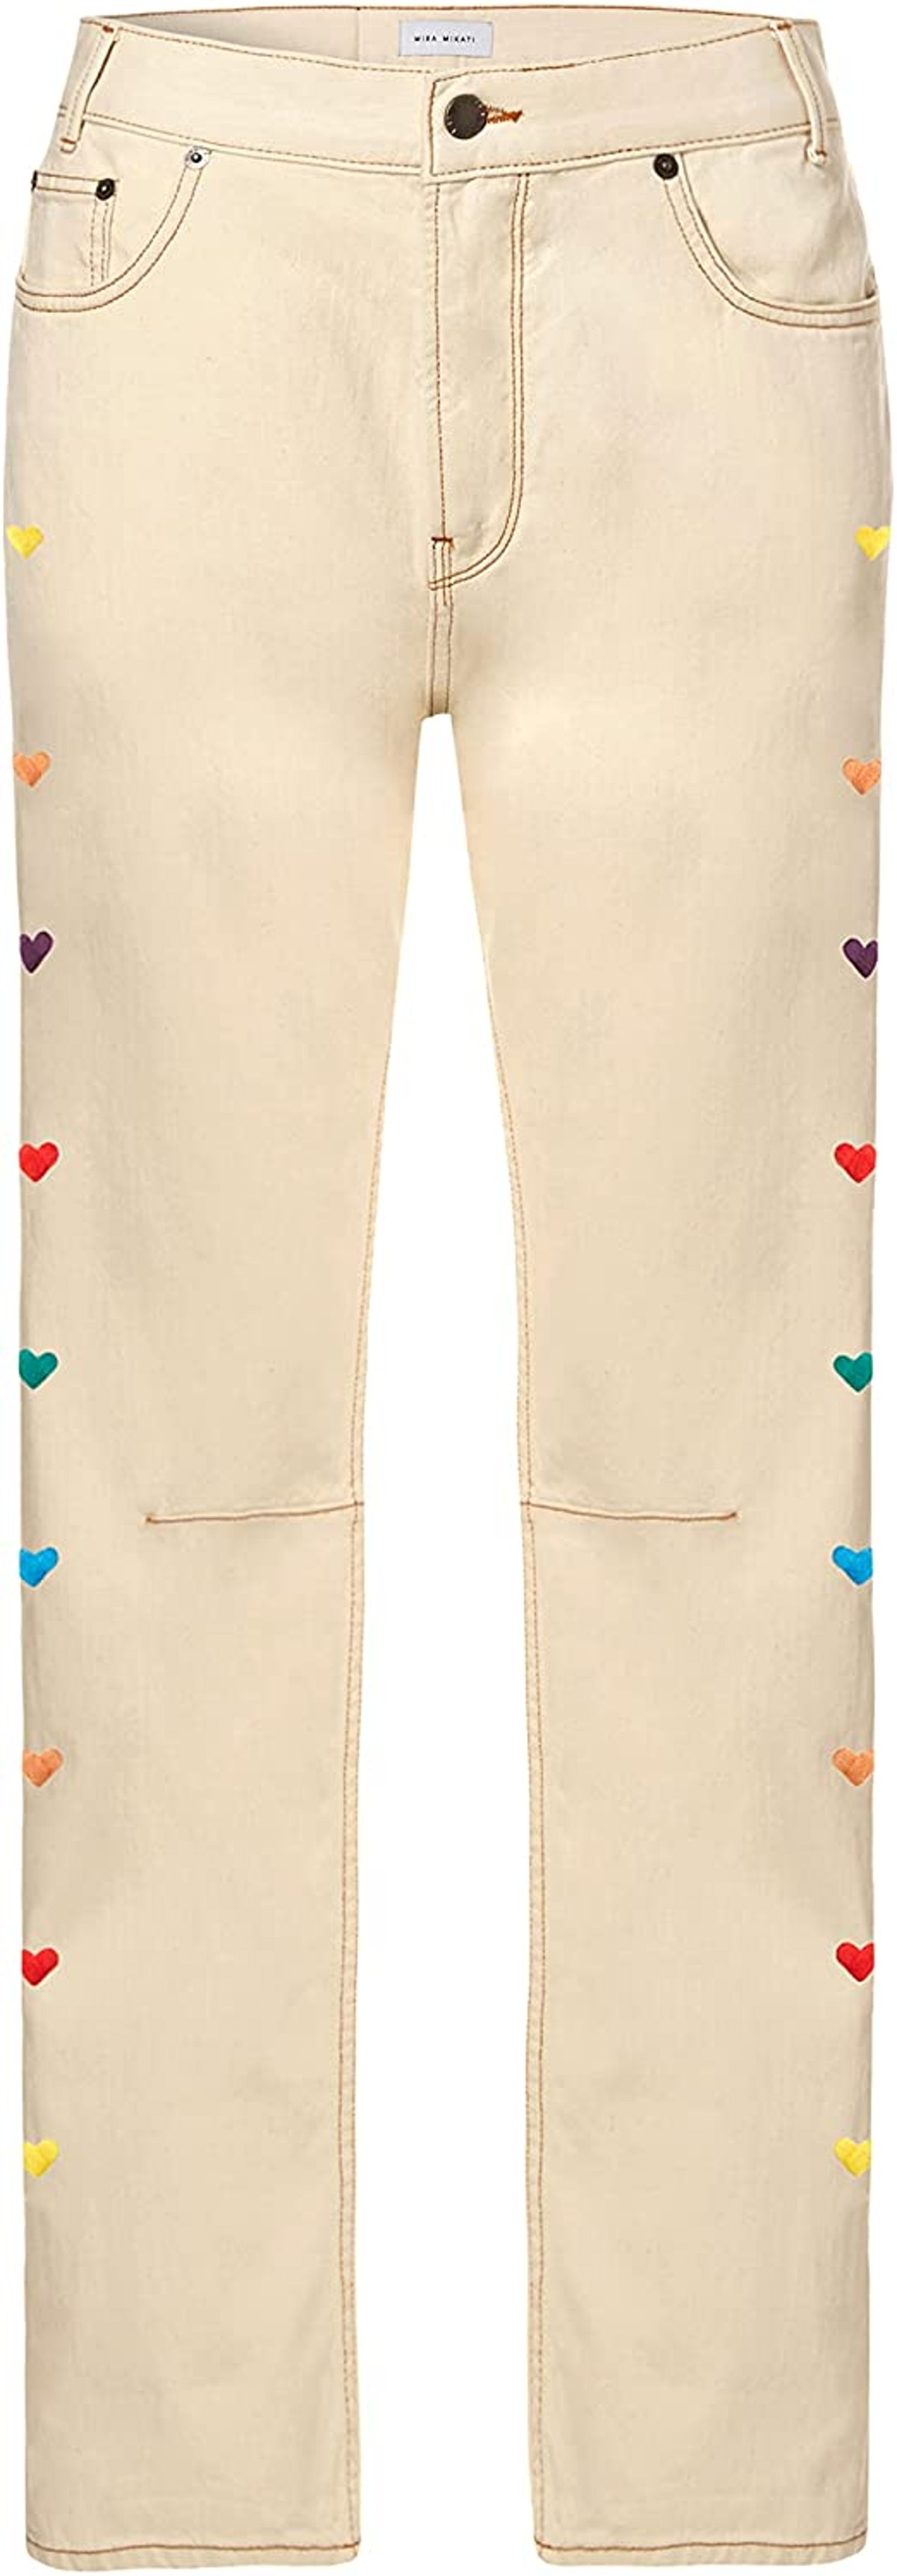 Heart Embroidered Jeans